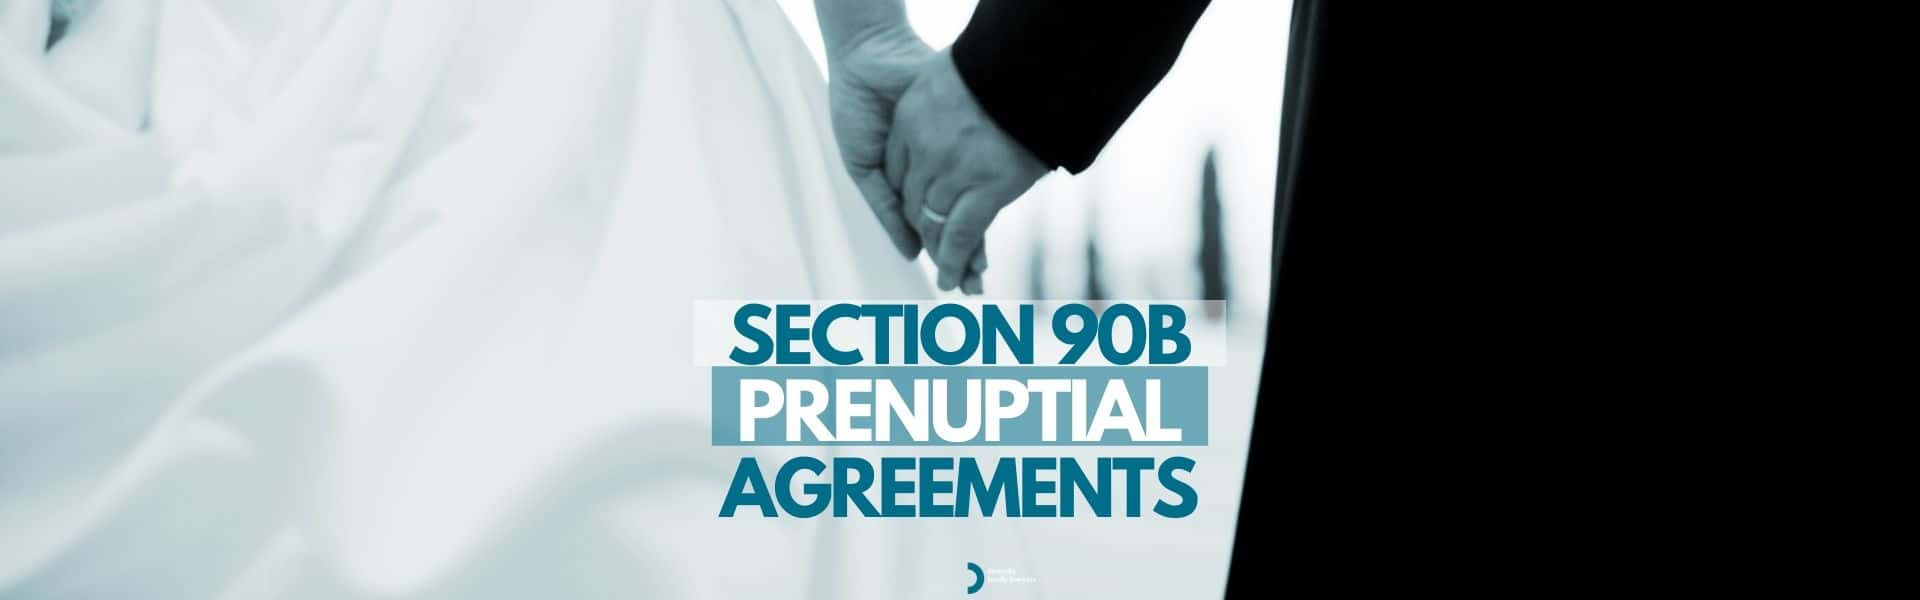 Section 90B Prenuptial Agreement Lawyer Sydney